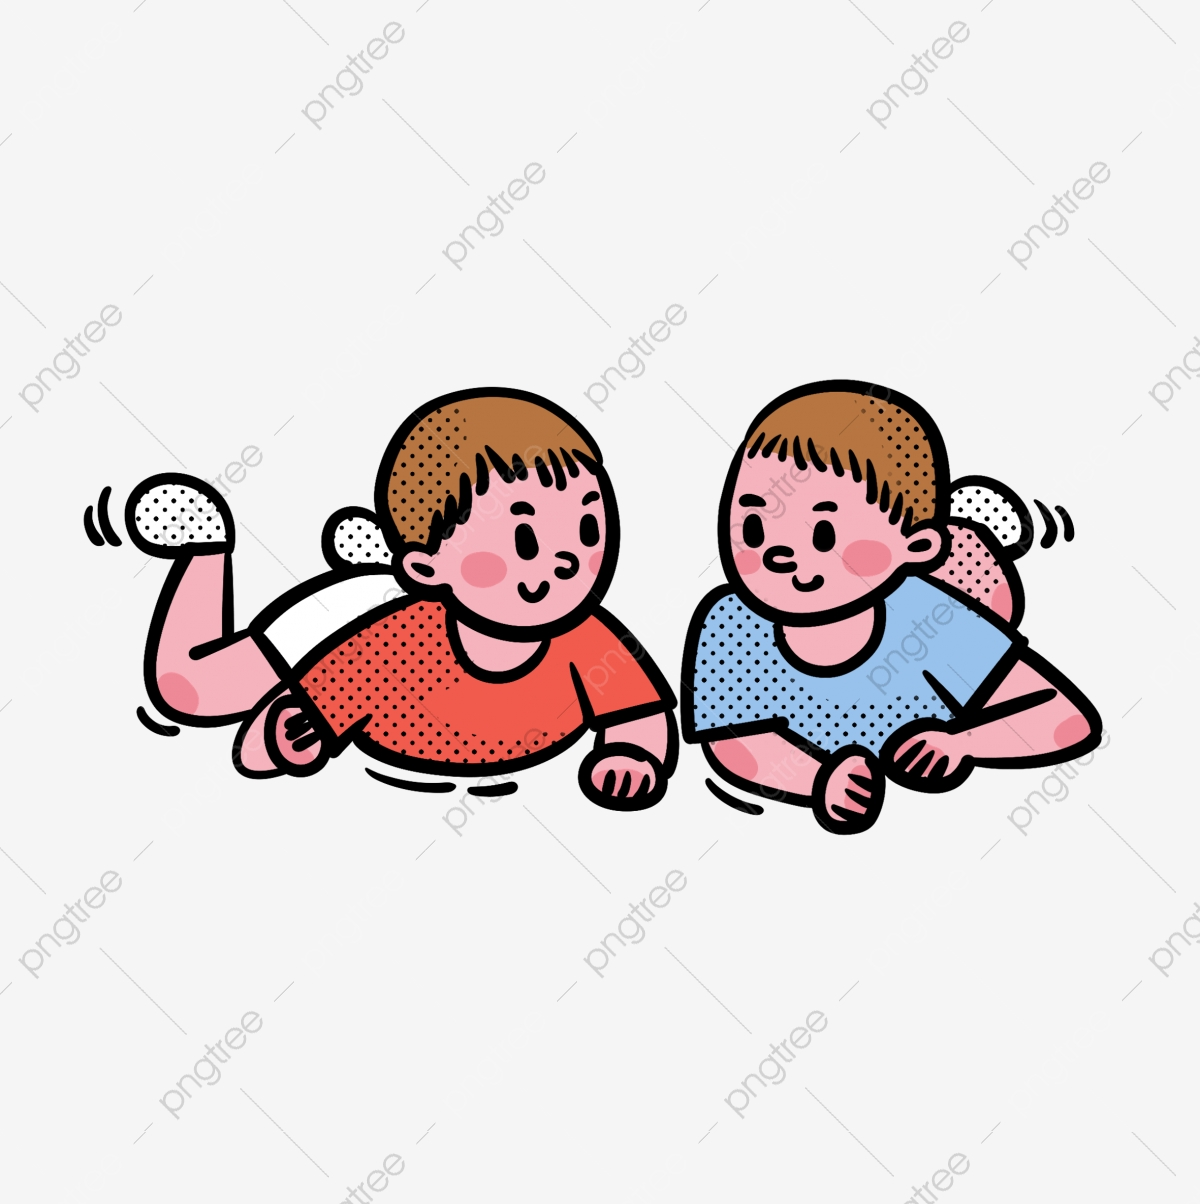 Cartoon Vector Free Cute Two Squatting Baby Babies Cartoon Vector Free Png Transparent Clipart Image And Psd File For Free Download